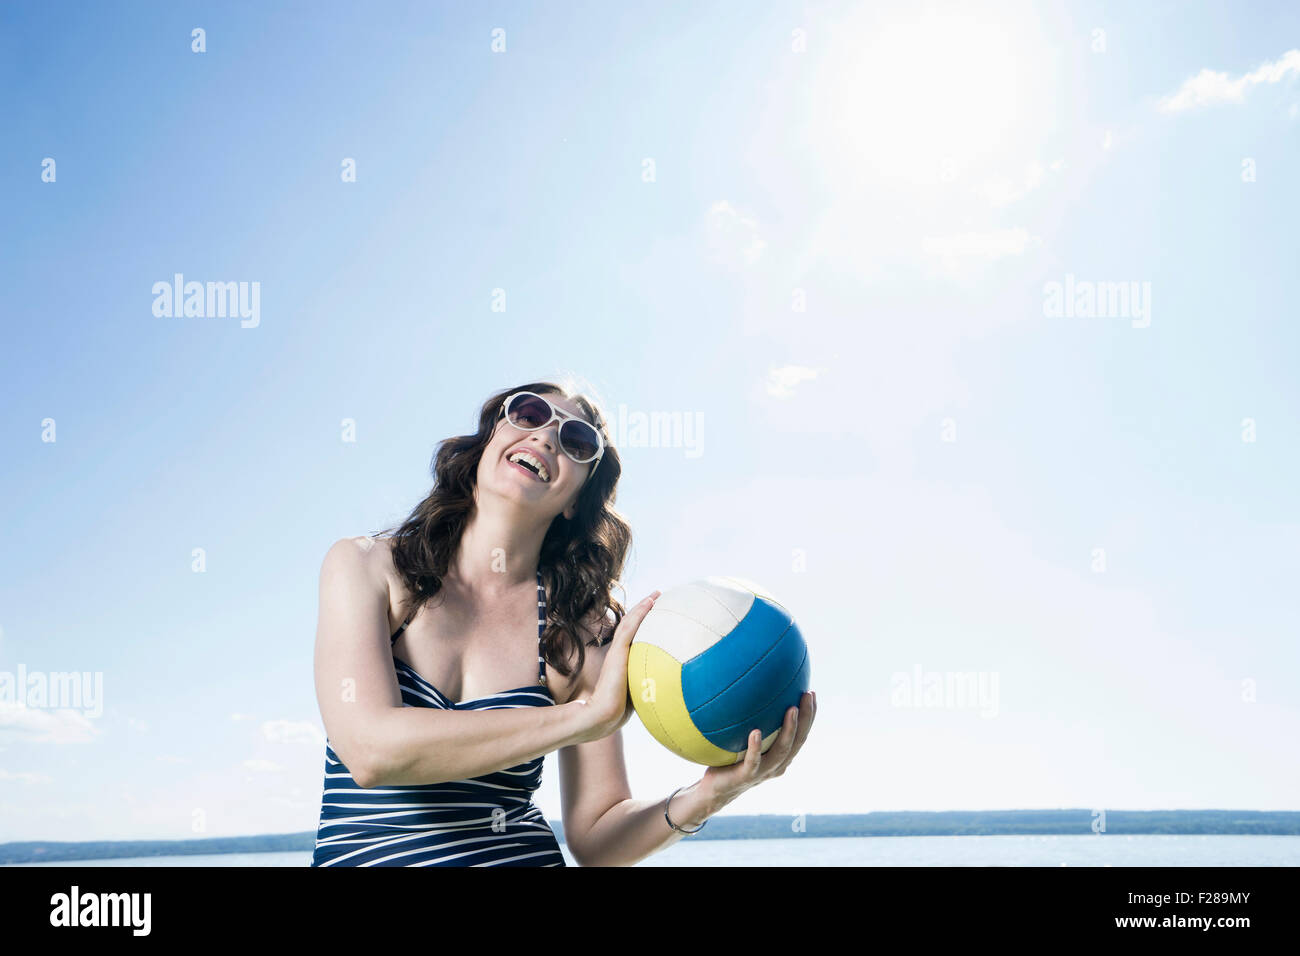 Mature woman playing volleyball on the beach, Bavaria, Germany Stock Photo